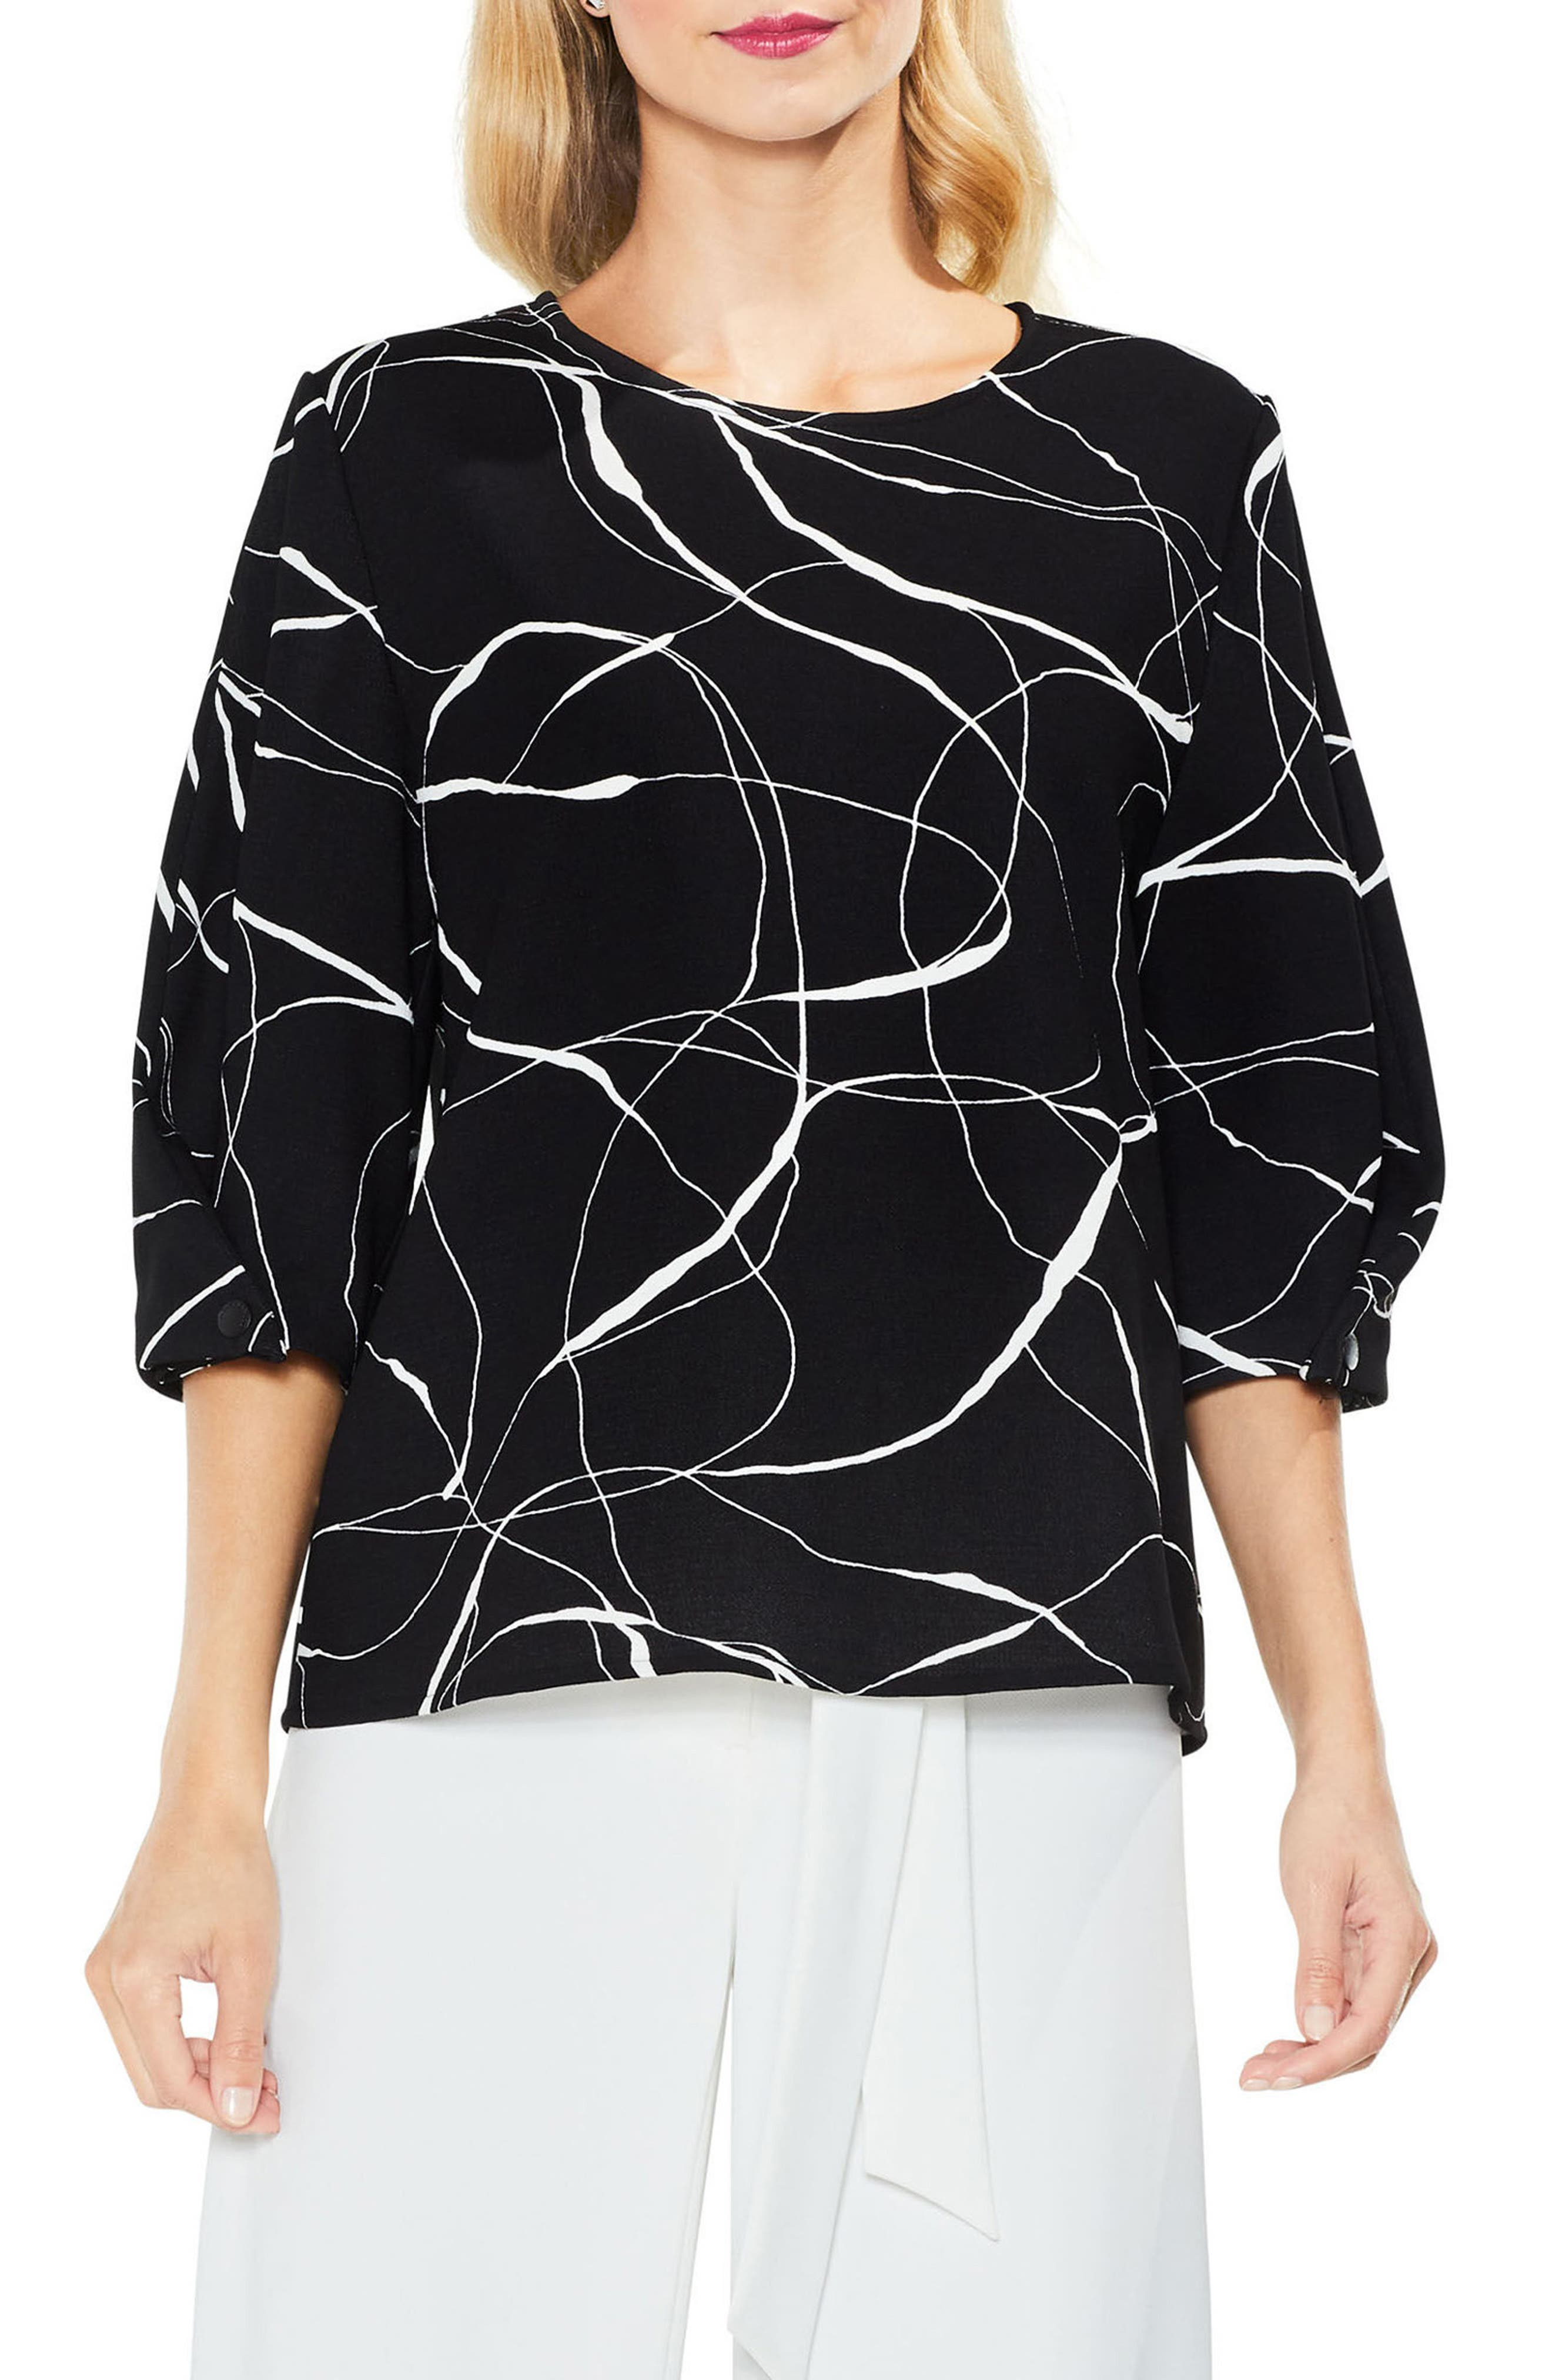 Main Image - Vince Camuto Ink Swirl Crepe Blouse